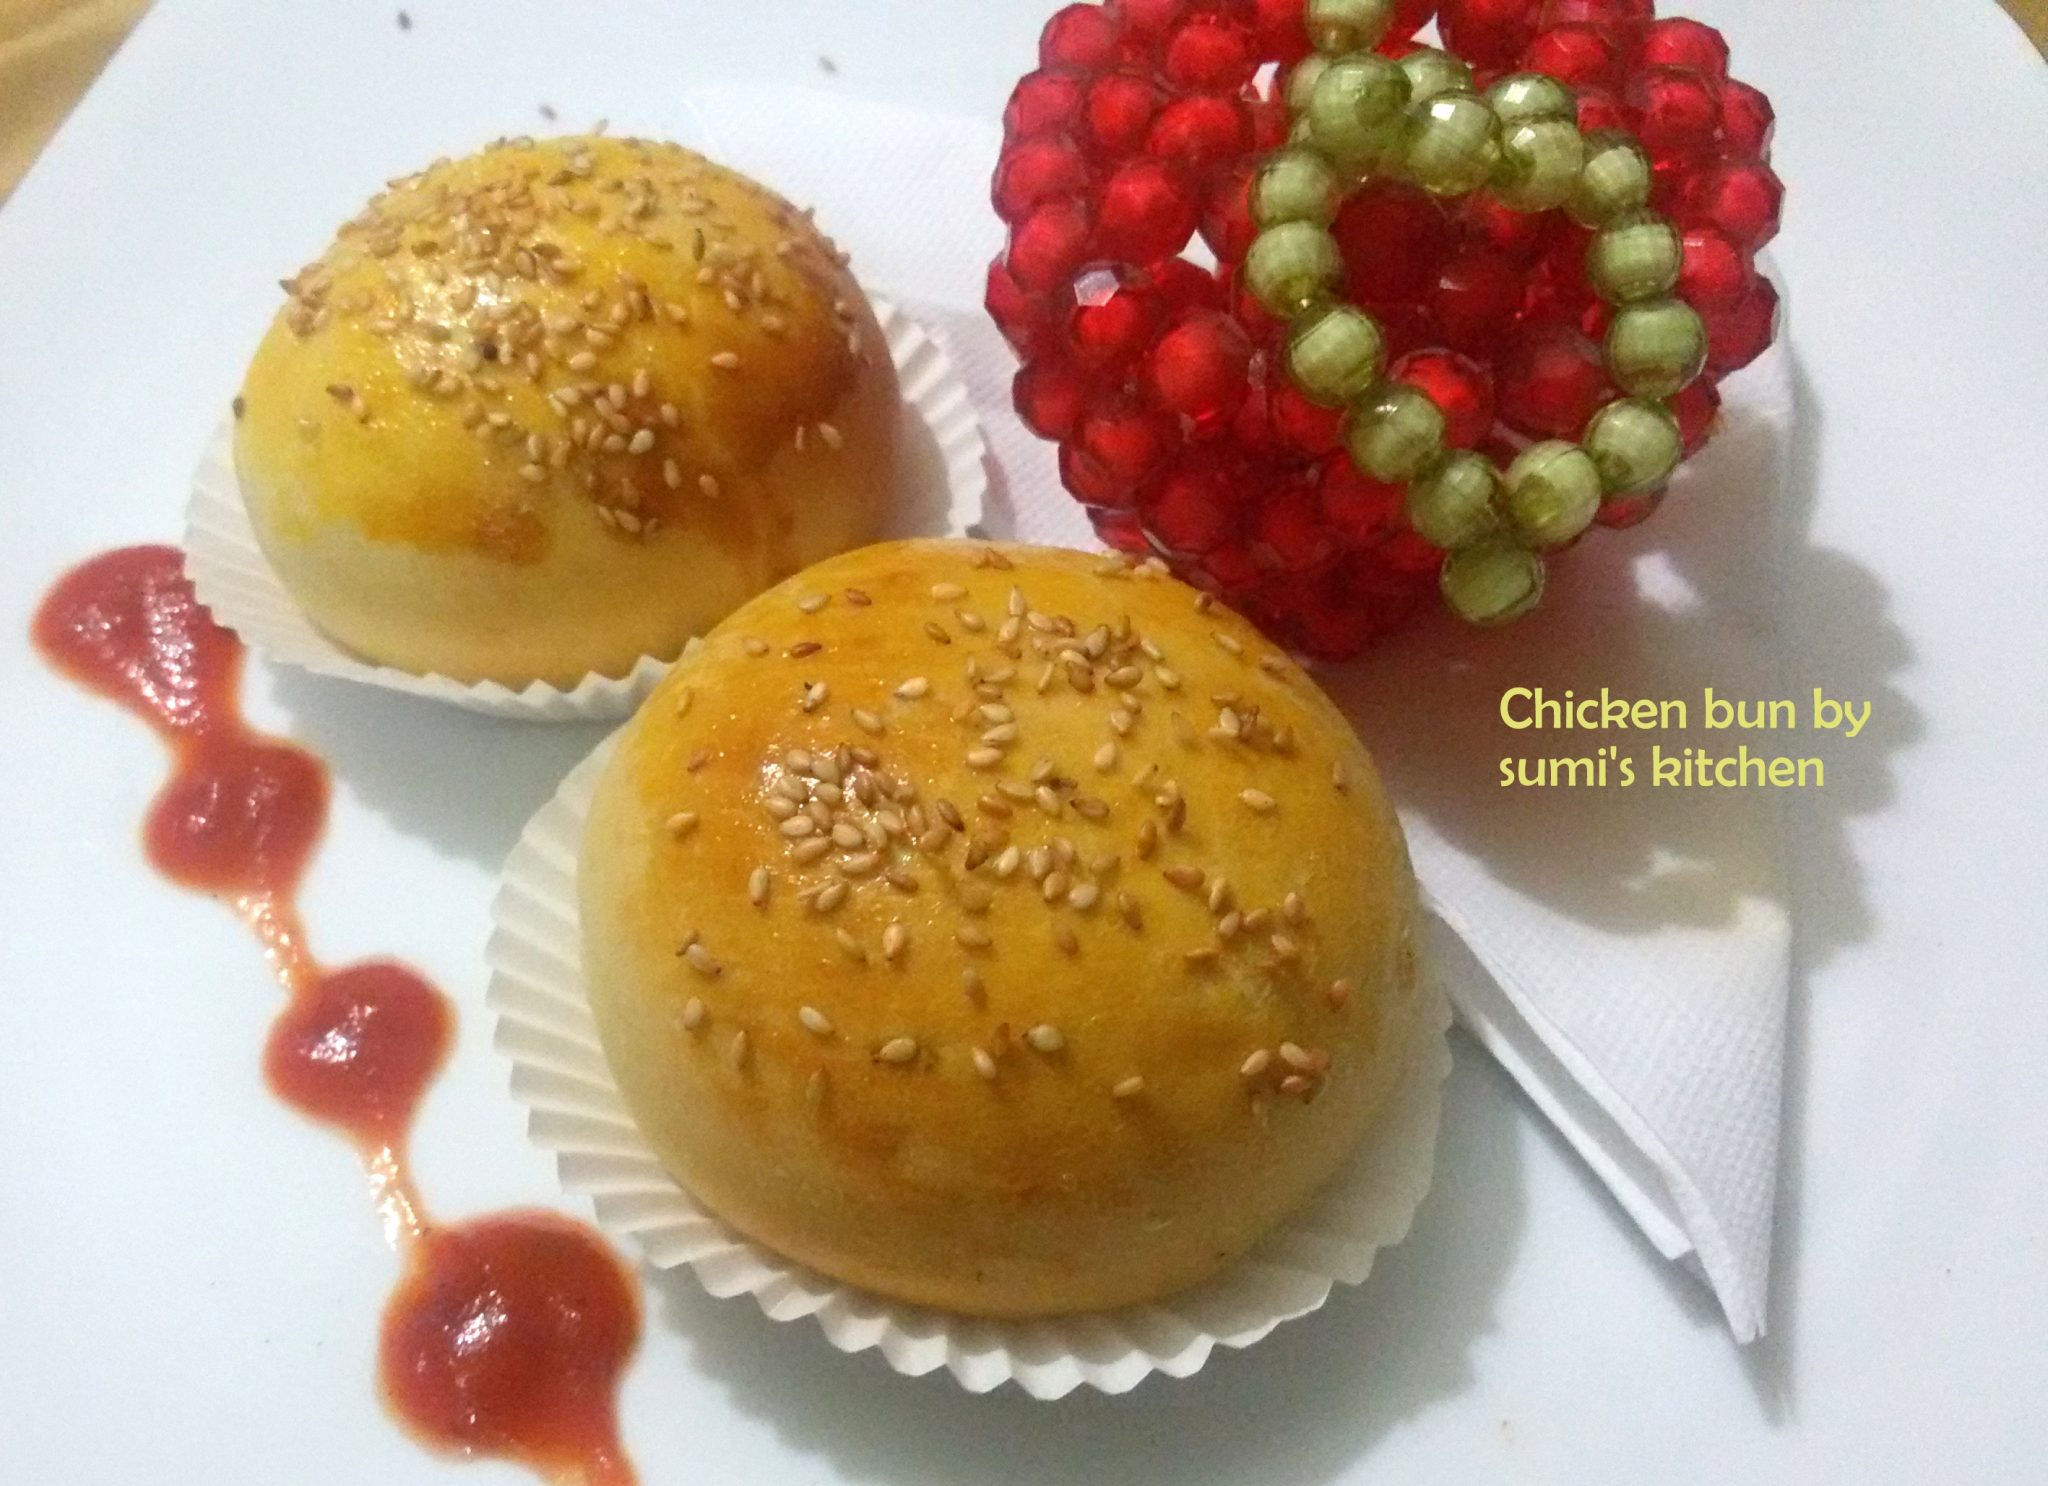 Chicken bun recipe